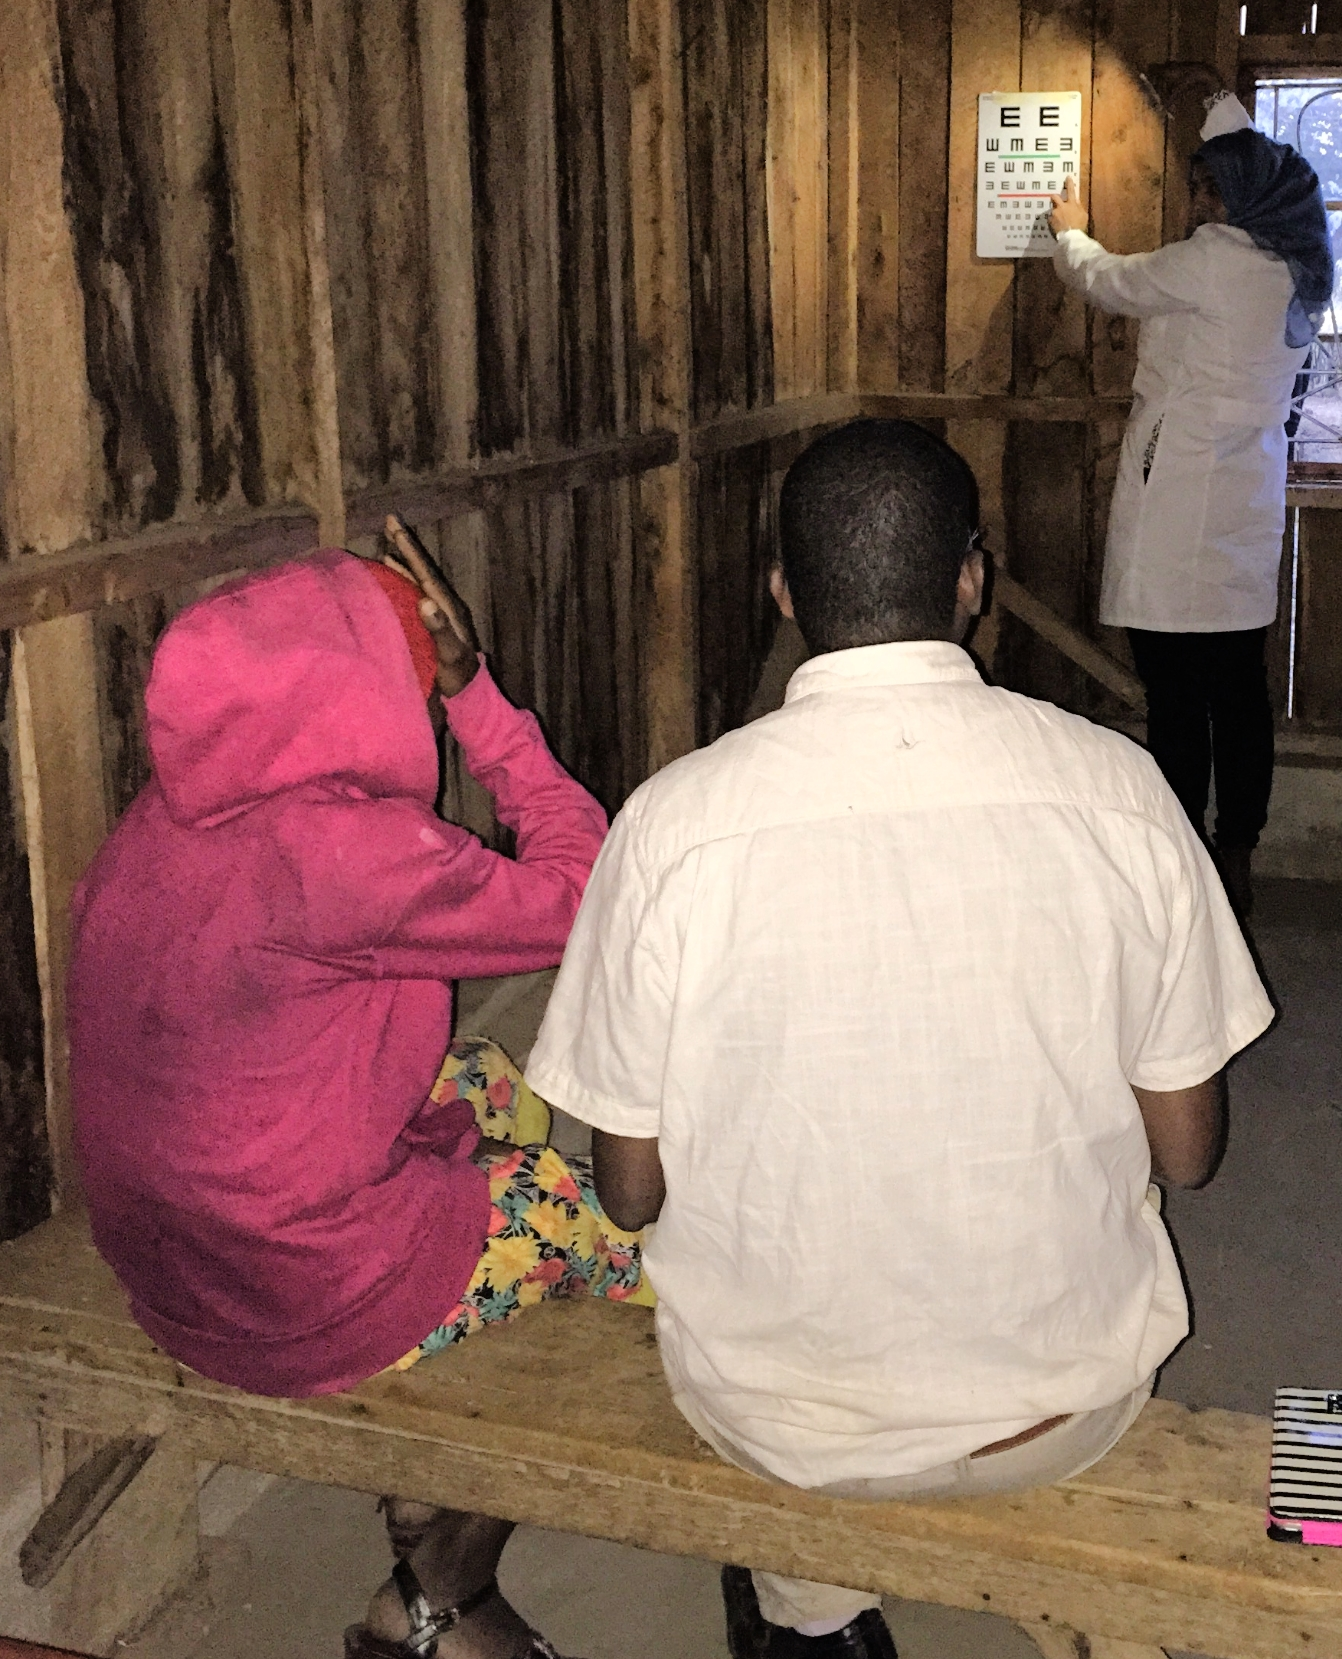 Dr. Sidiqa and Ezekiel worked until dark to examine patients. Rather difficult to do vision screening when only using a flashlight, but it would be worse to turn them away after waiting hours (all day for some) to be seen by the doctor.